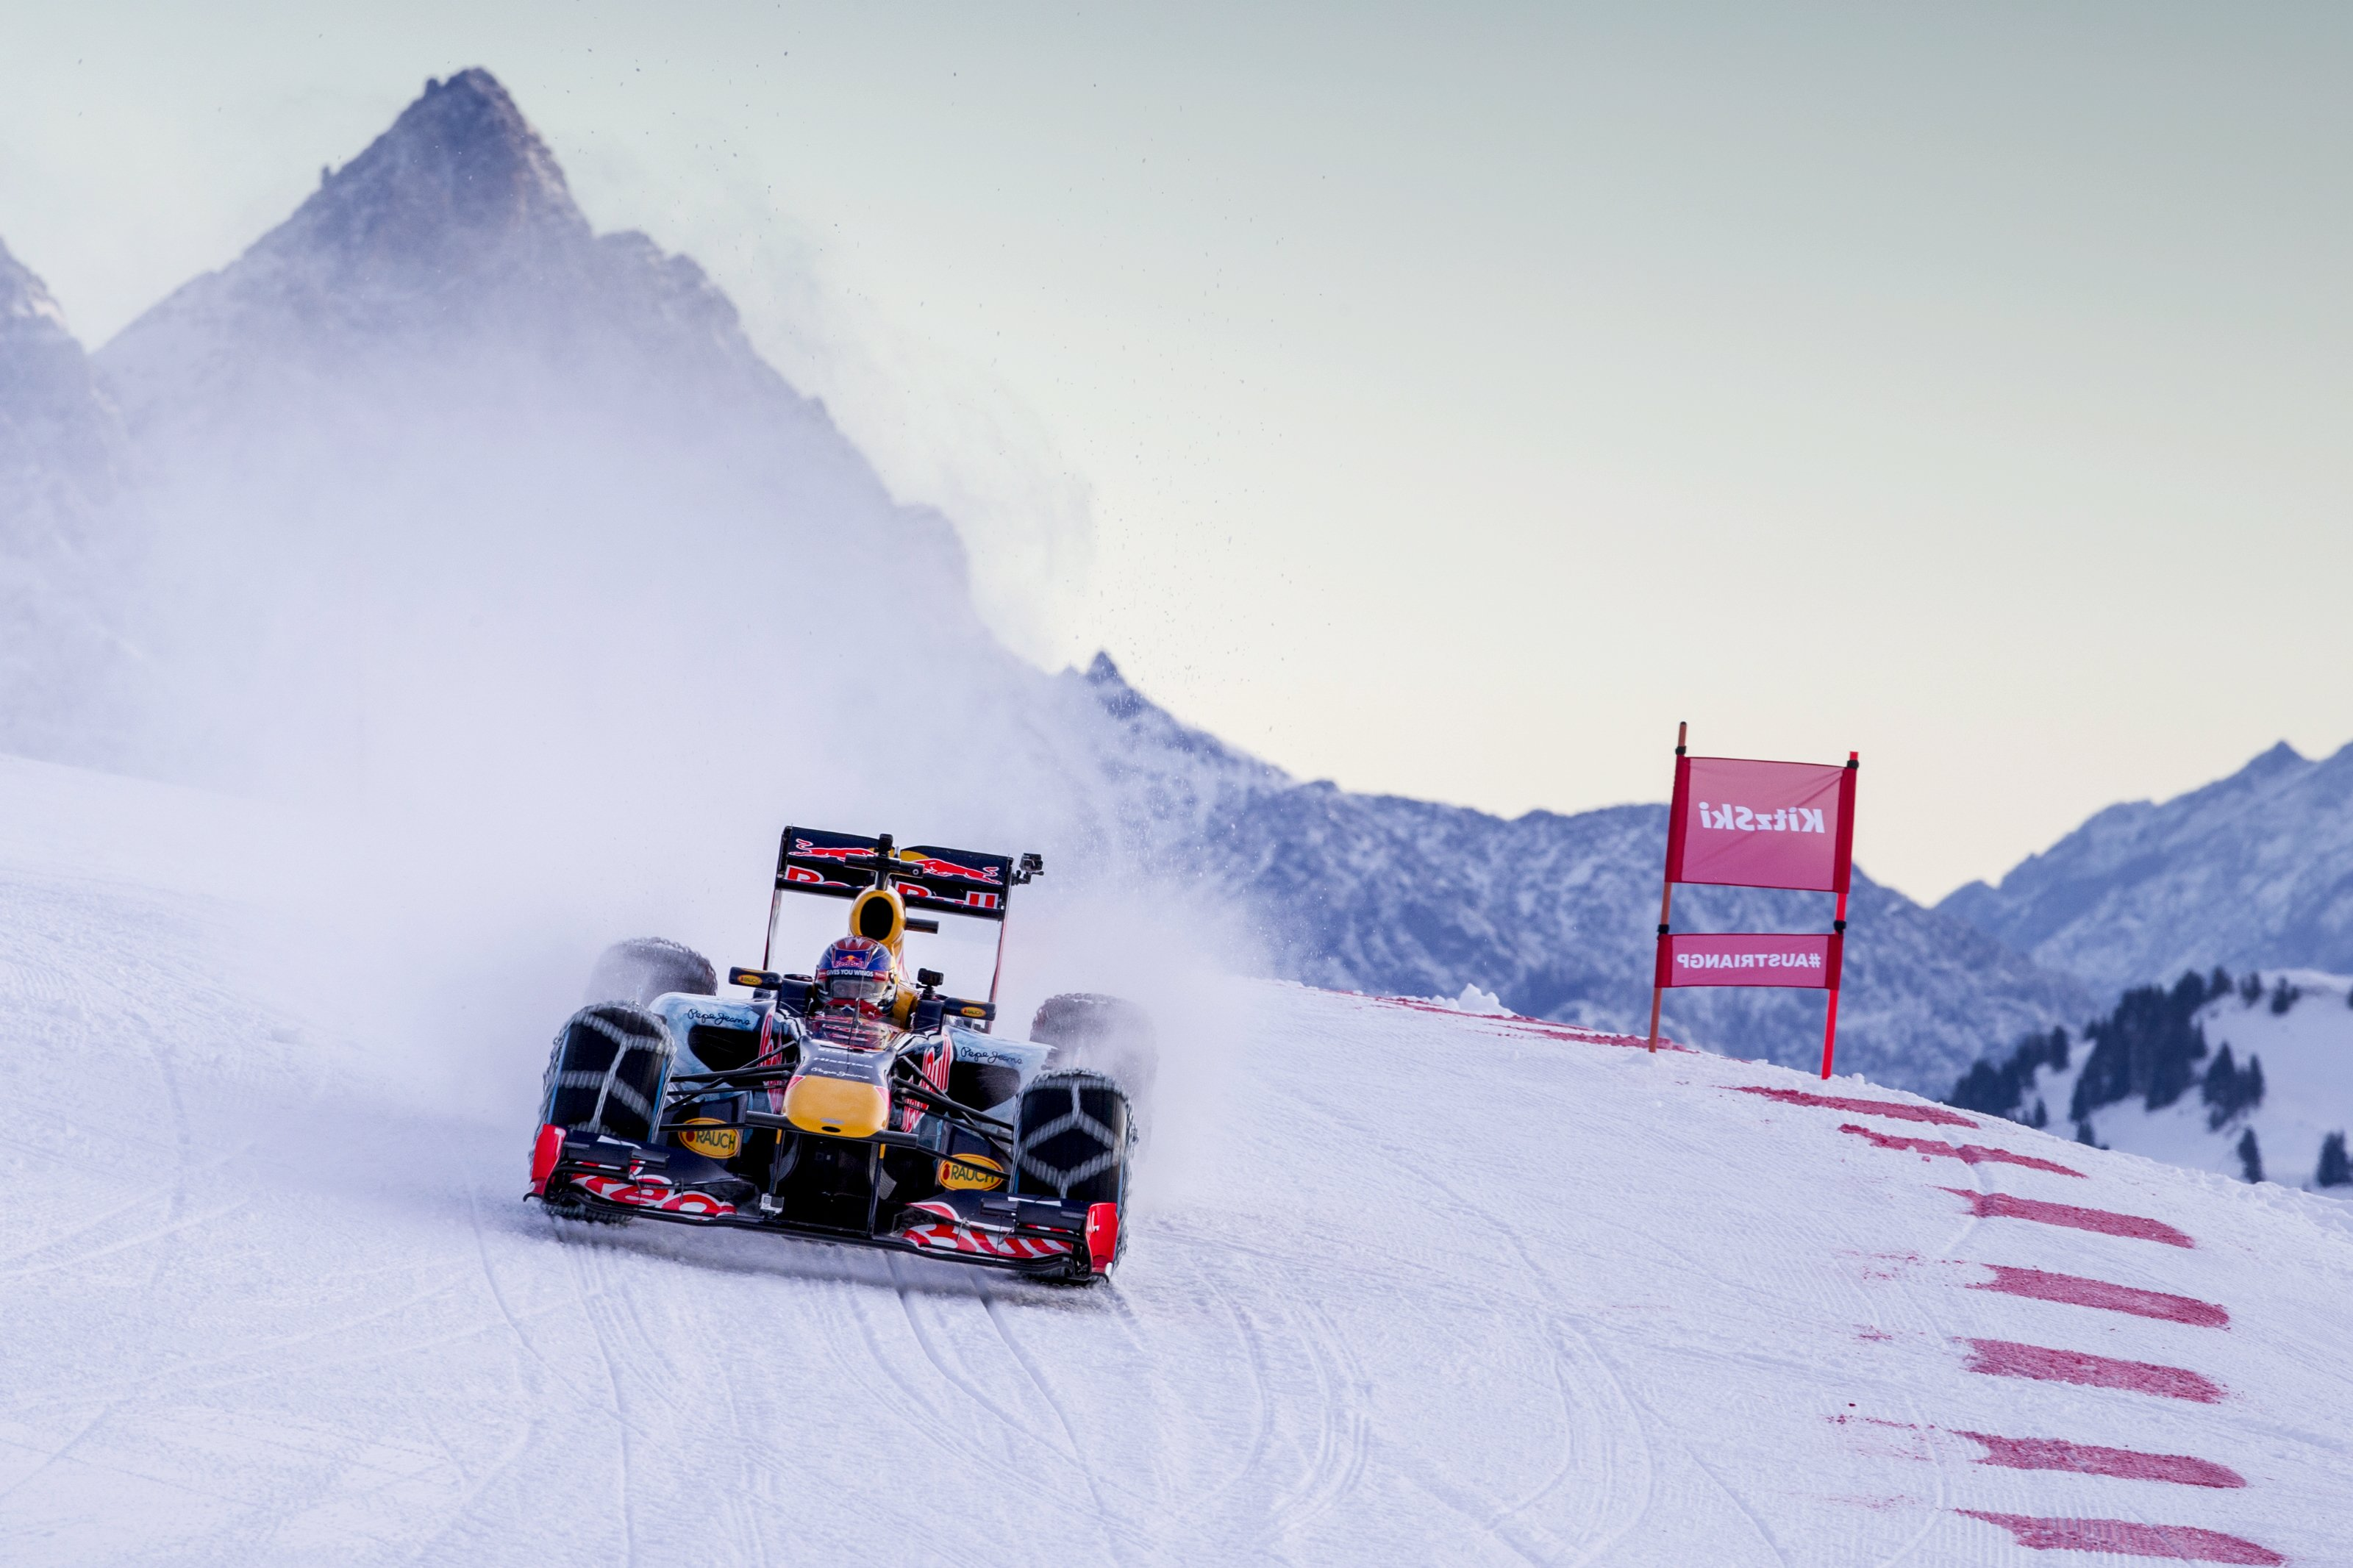 8 Million Dollar Car Wallpapers Red Bull Could Be Fined 30 000 For That Awesome F1 Snow